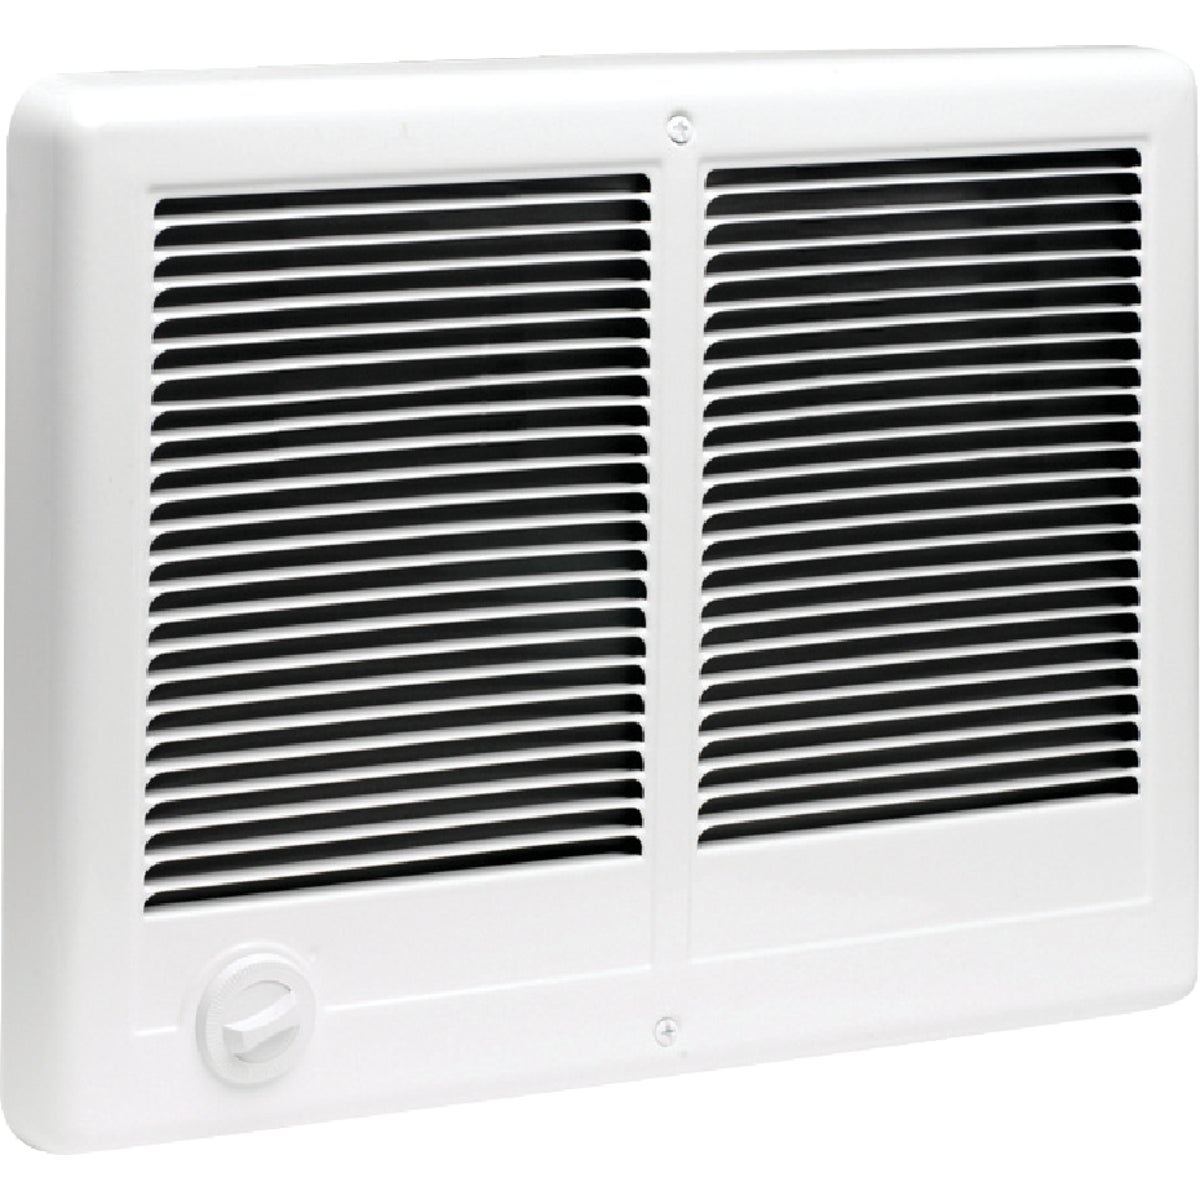 IN-WALL FAN HEATER - 67527 by Cadet Mfg Co